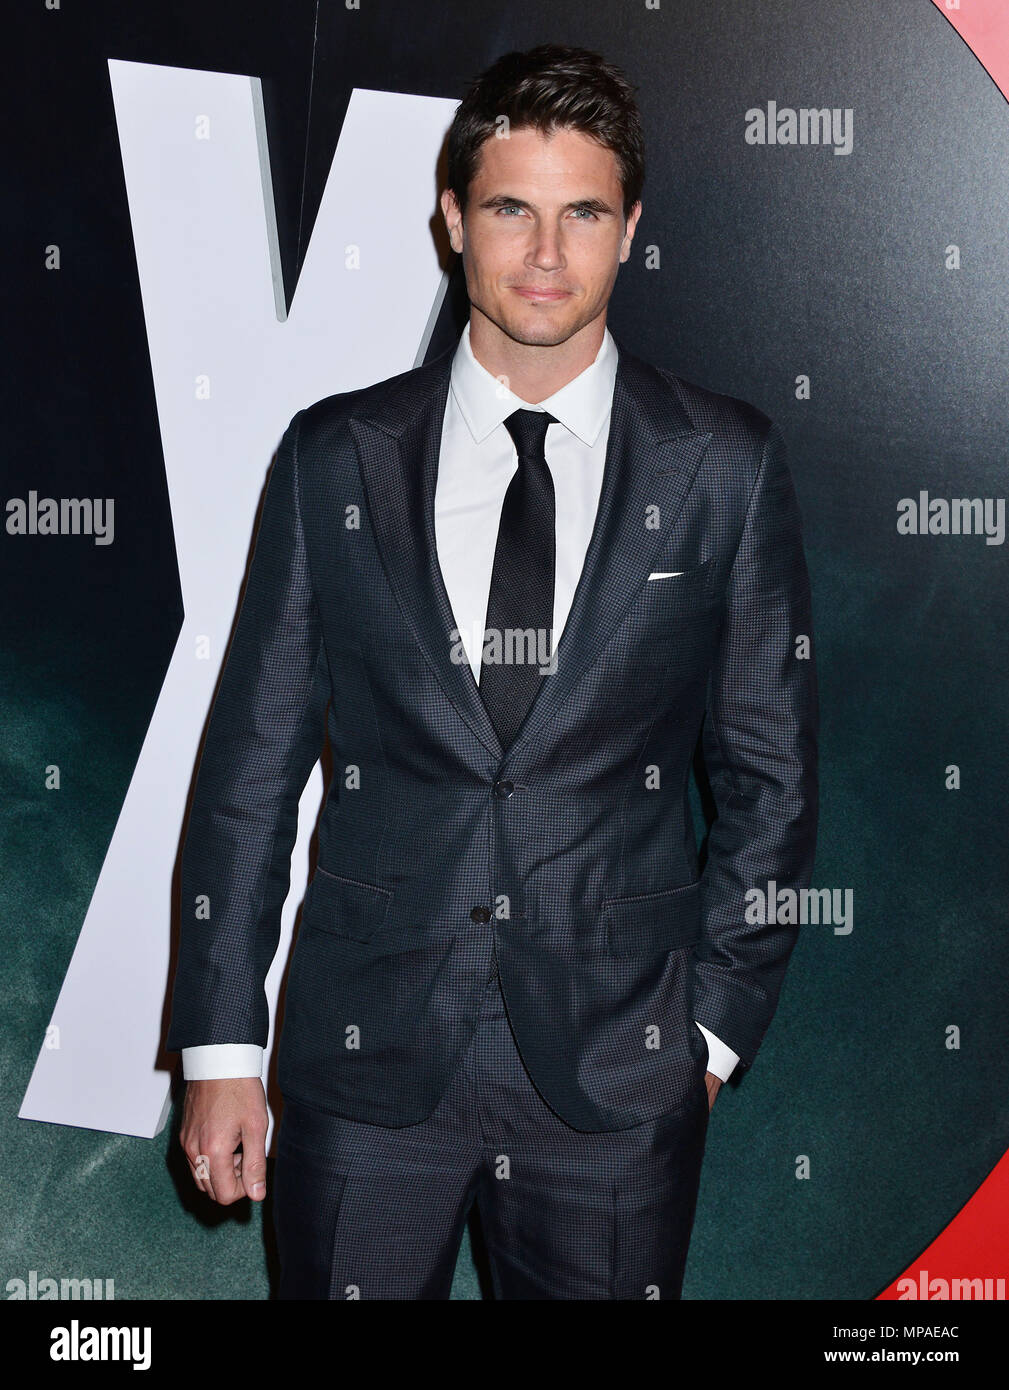 Robbie Amell 039  at The X-Files Premiere at California Science Center in Los Angeles, CA  January 12, 2016.Robbie Amell 039 ------------- Red Carpet Event, Vertical, USA, Film Industry, Celebrities,  Photography, Bestof, Arts Culture and Entertainment, Topix Celebrities fashion /  Vertical, Best of, Event in Hollywood Life - California,  Red Carpet and backstage, USA, Film Industry, Celebrities,  movie celebrities, TV celebrities, Music celebrities, Photography, Bestof, Arts Culture and Entertainment,  Topix, Three Quarters, vertical, one person,, from the year , 2016, inquiry tsuni@Gamma-USA - Stock Image